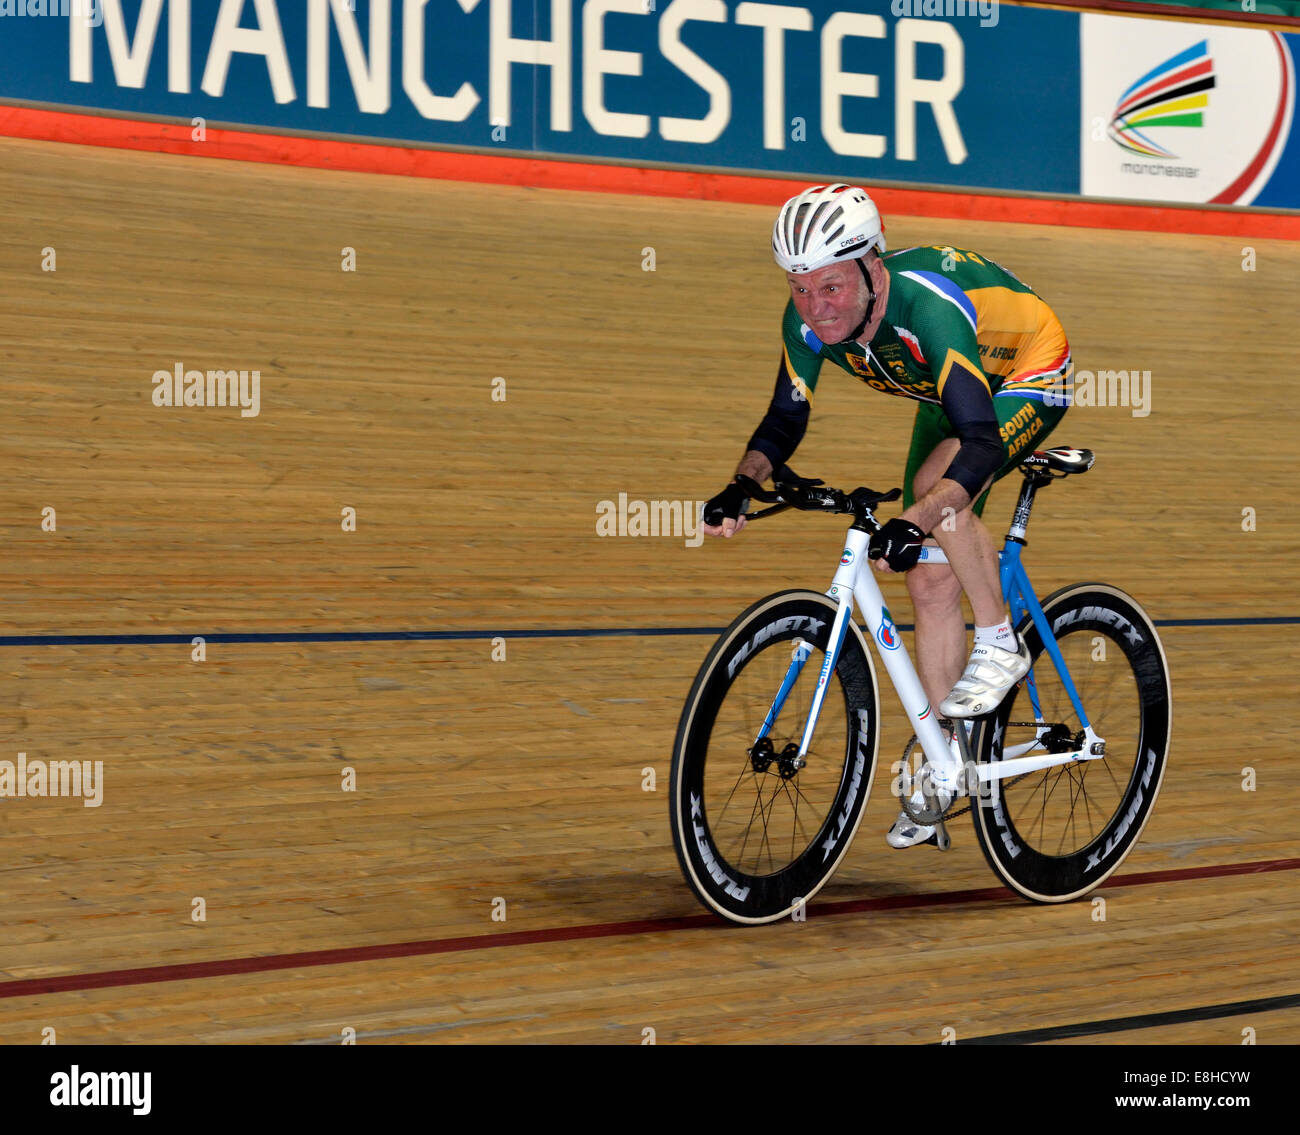 0de549bd478 John Moss (South Africa) in action in the 2,000m individual pursuit for the  65-69 age-group during the 2014 UCI Track Cycling World Masters  Championships.